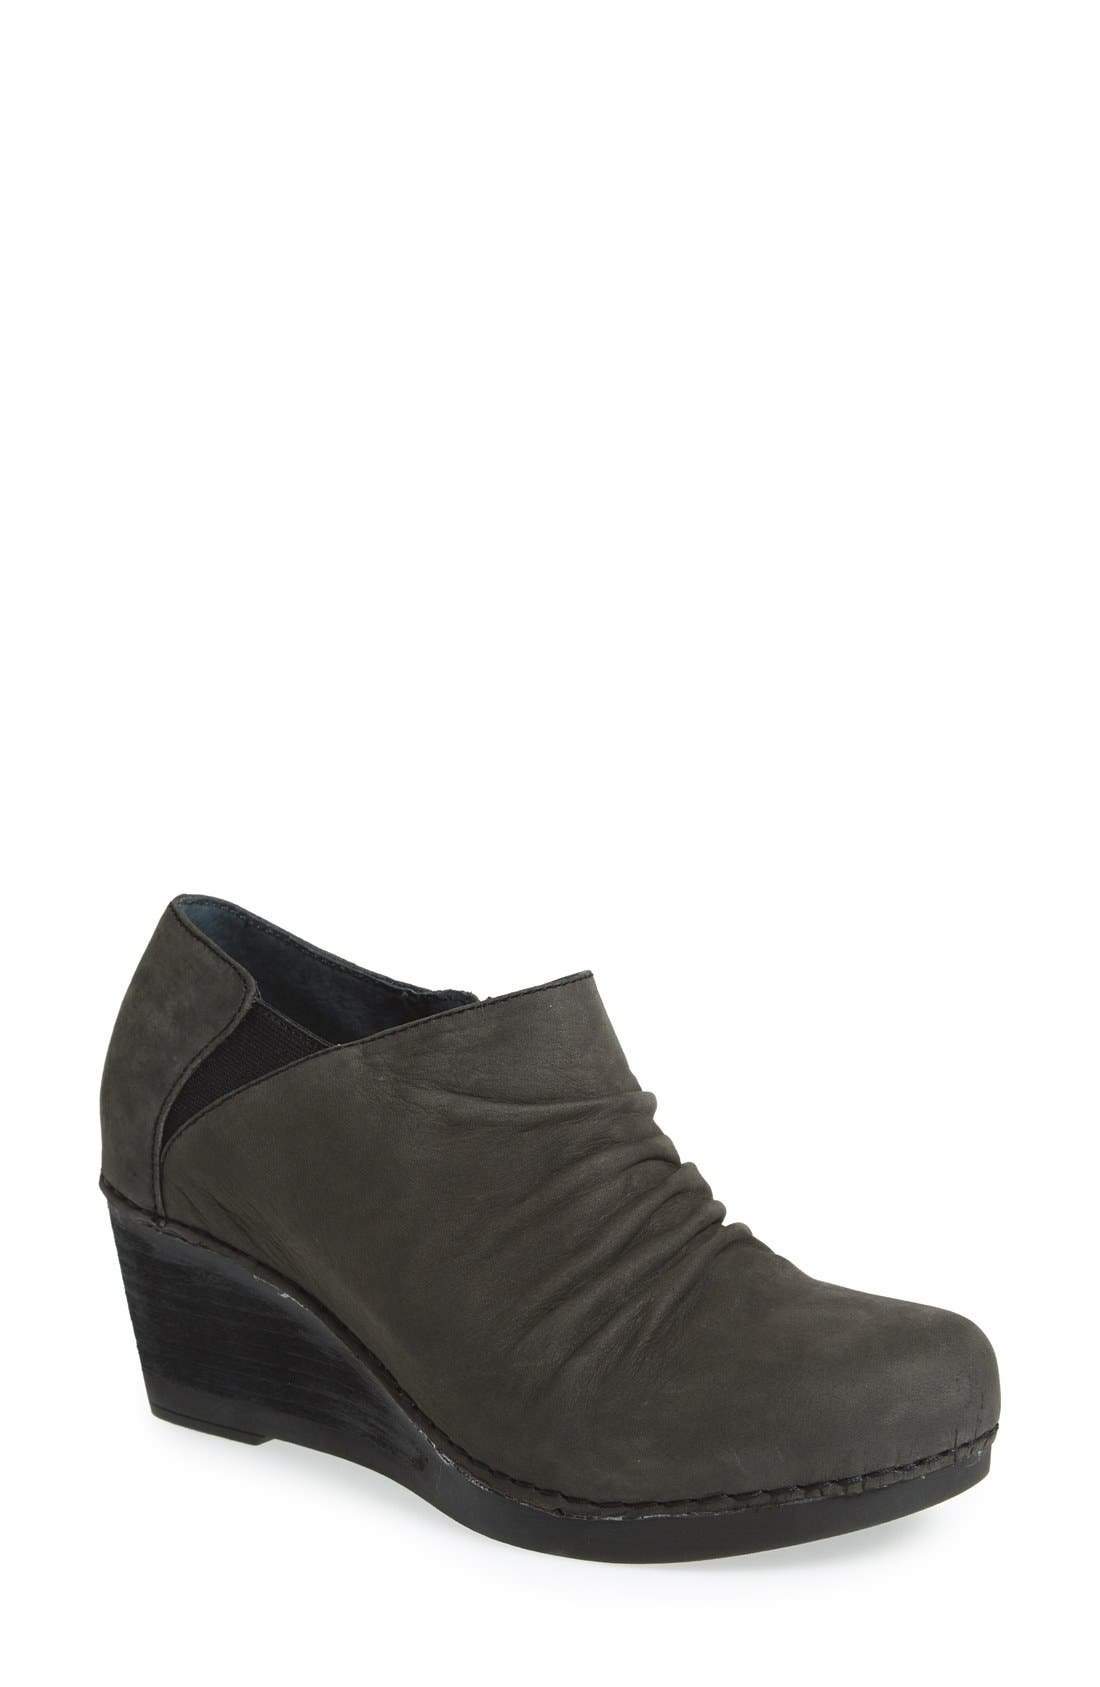 Dansko 'Sheena' Slouchy Wedge Bootie (Women)